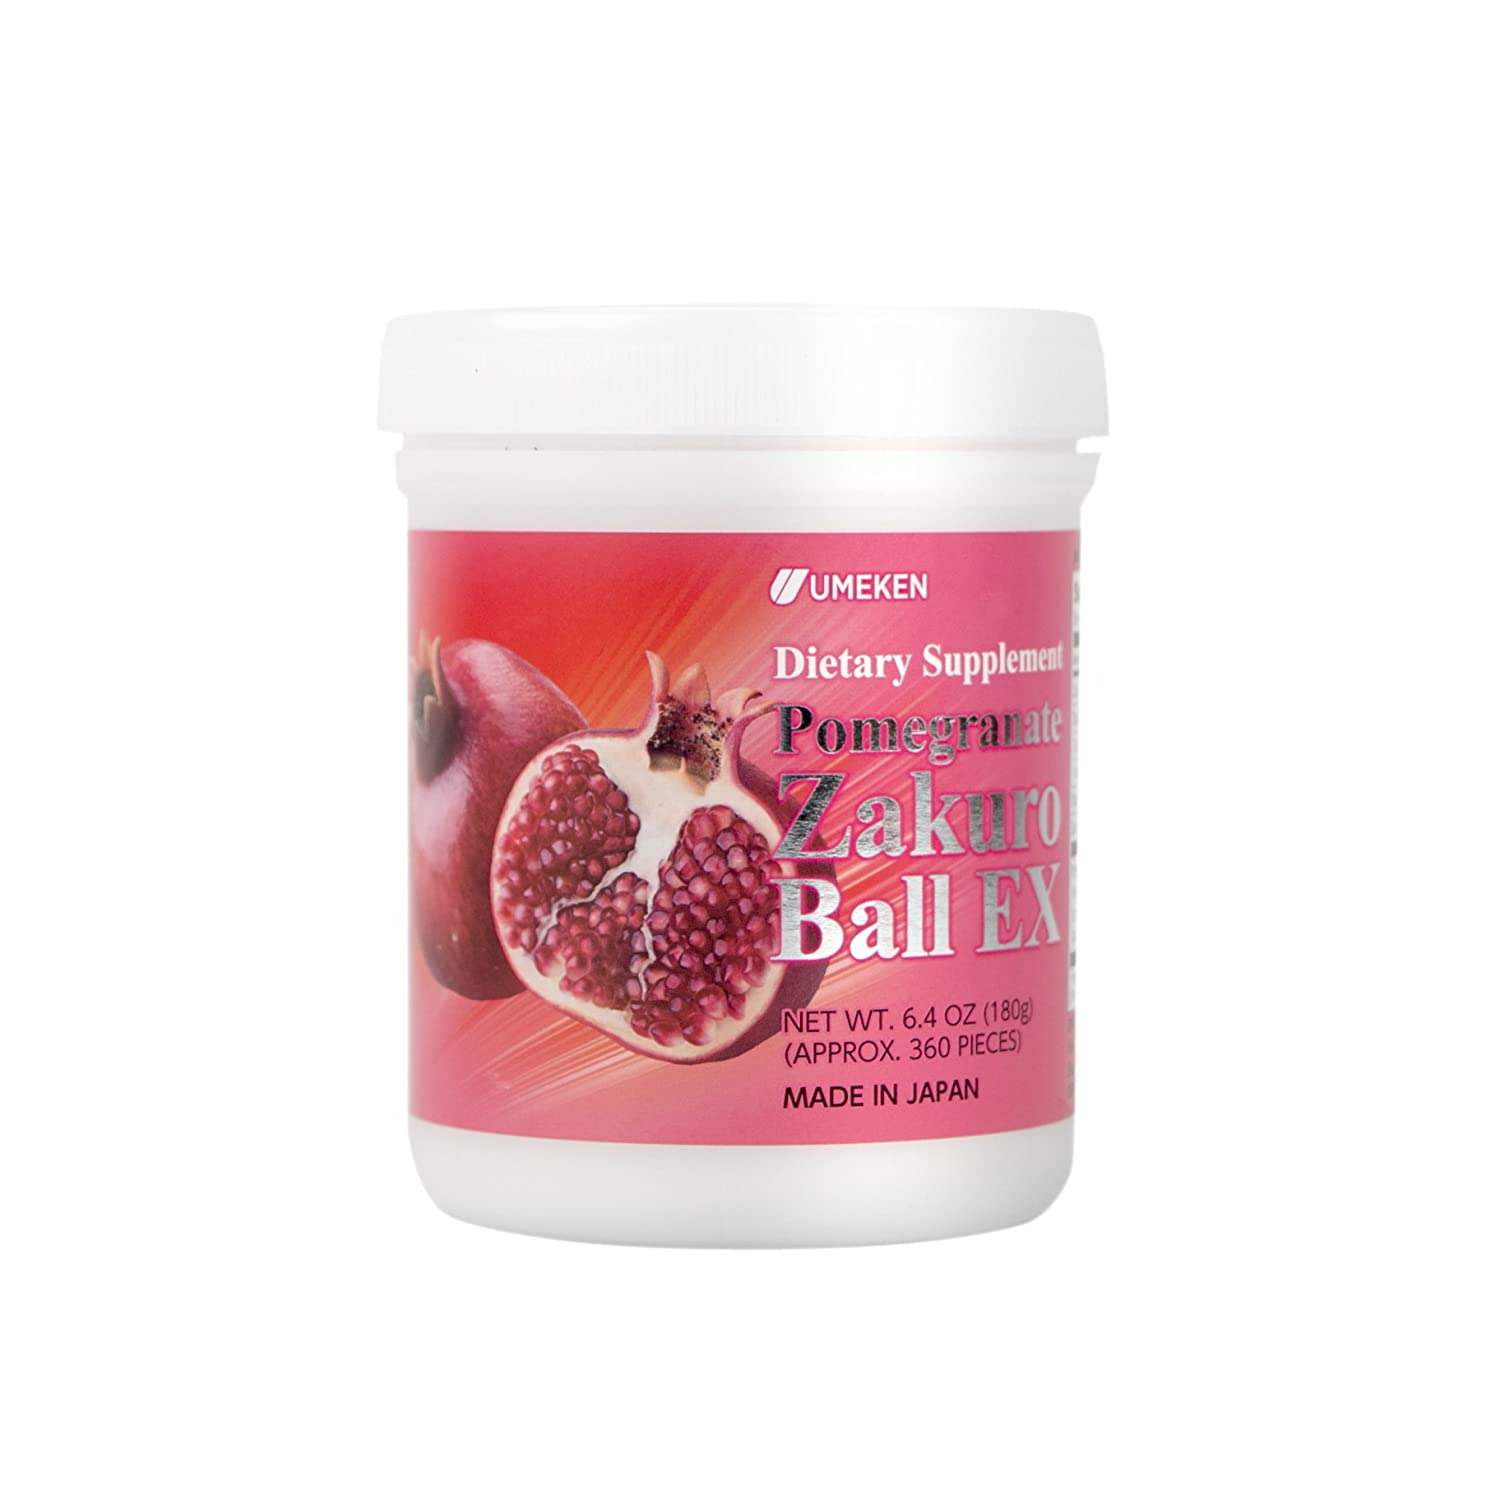 Umeken Pomegranate Zakuro Ball EX – Concentrated Pomegranate Extract, Natural Vitamins, Minerals, Citric Acids and Tannins. Chewable, Made in Japan. About a 2 Month Supply.